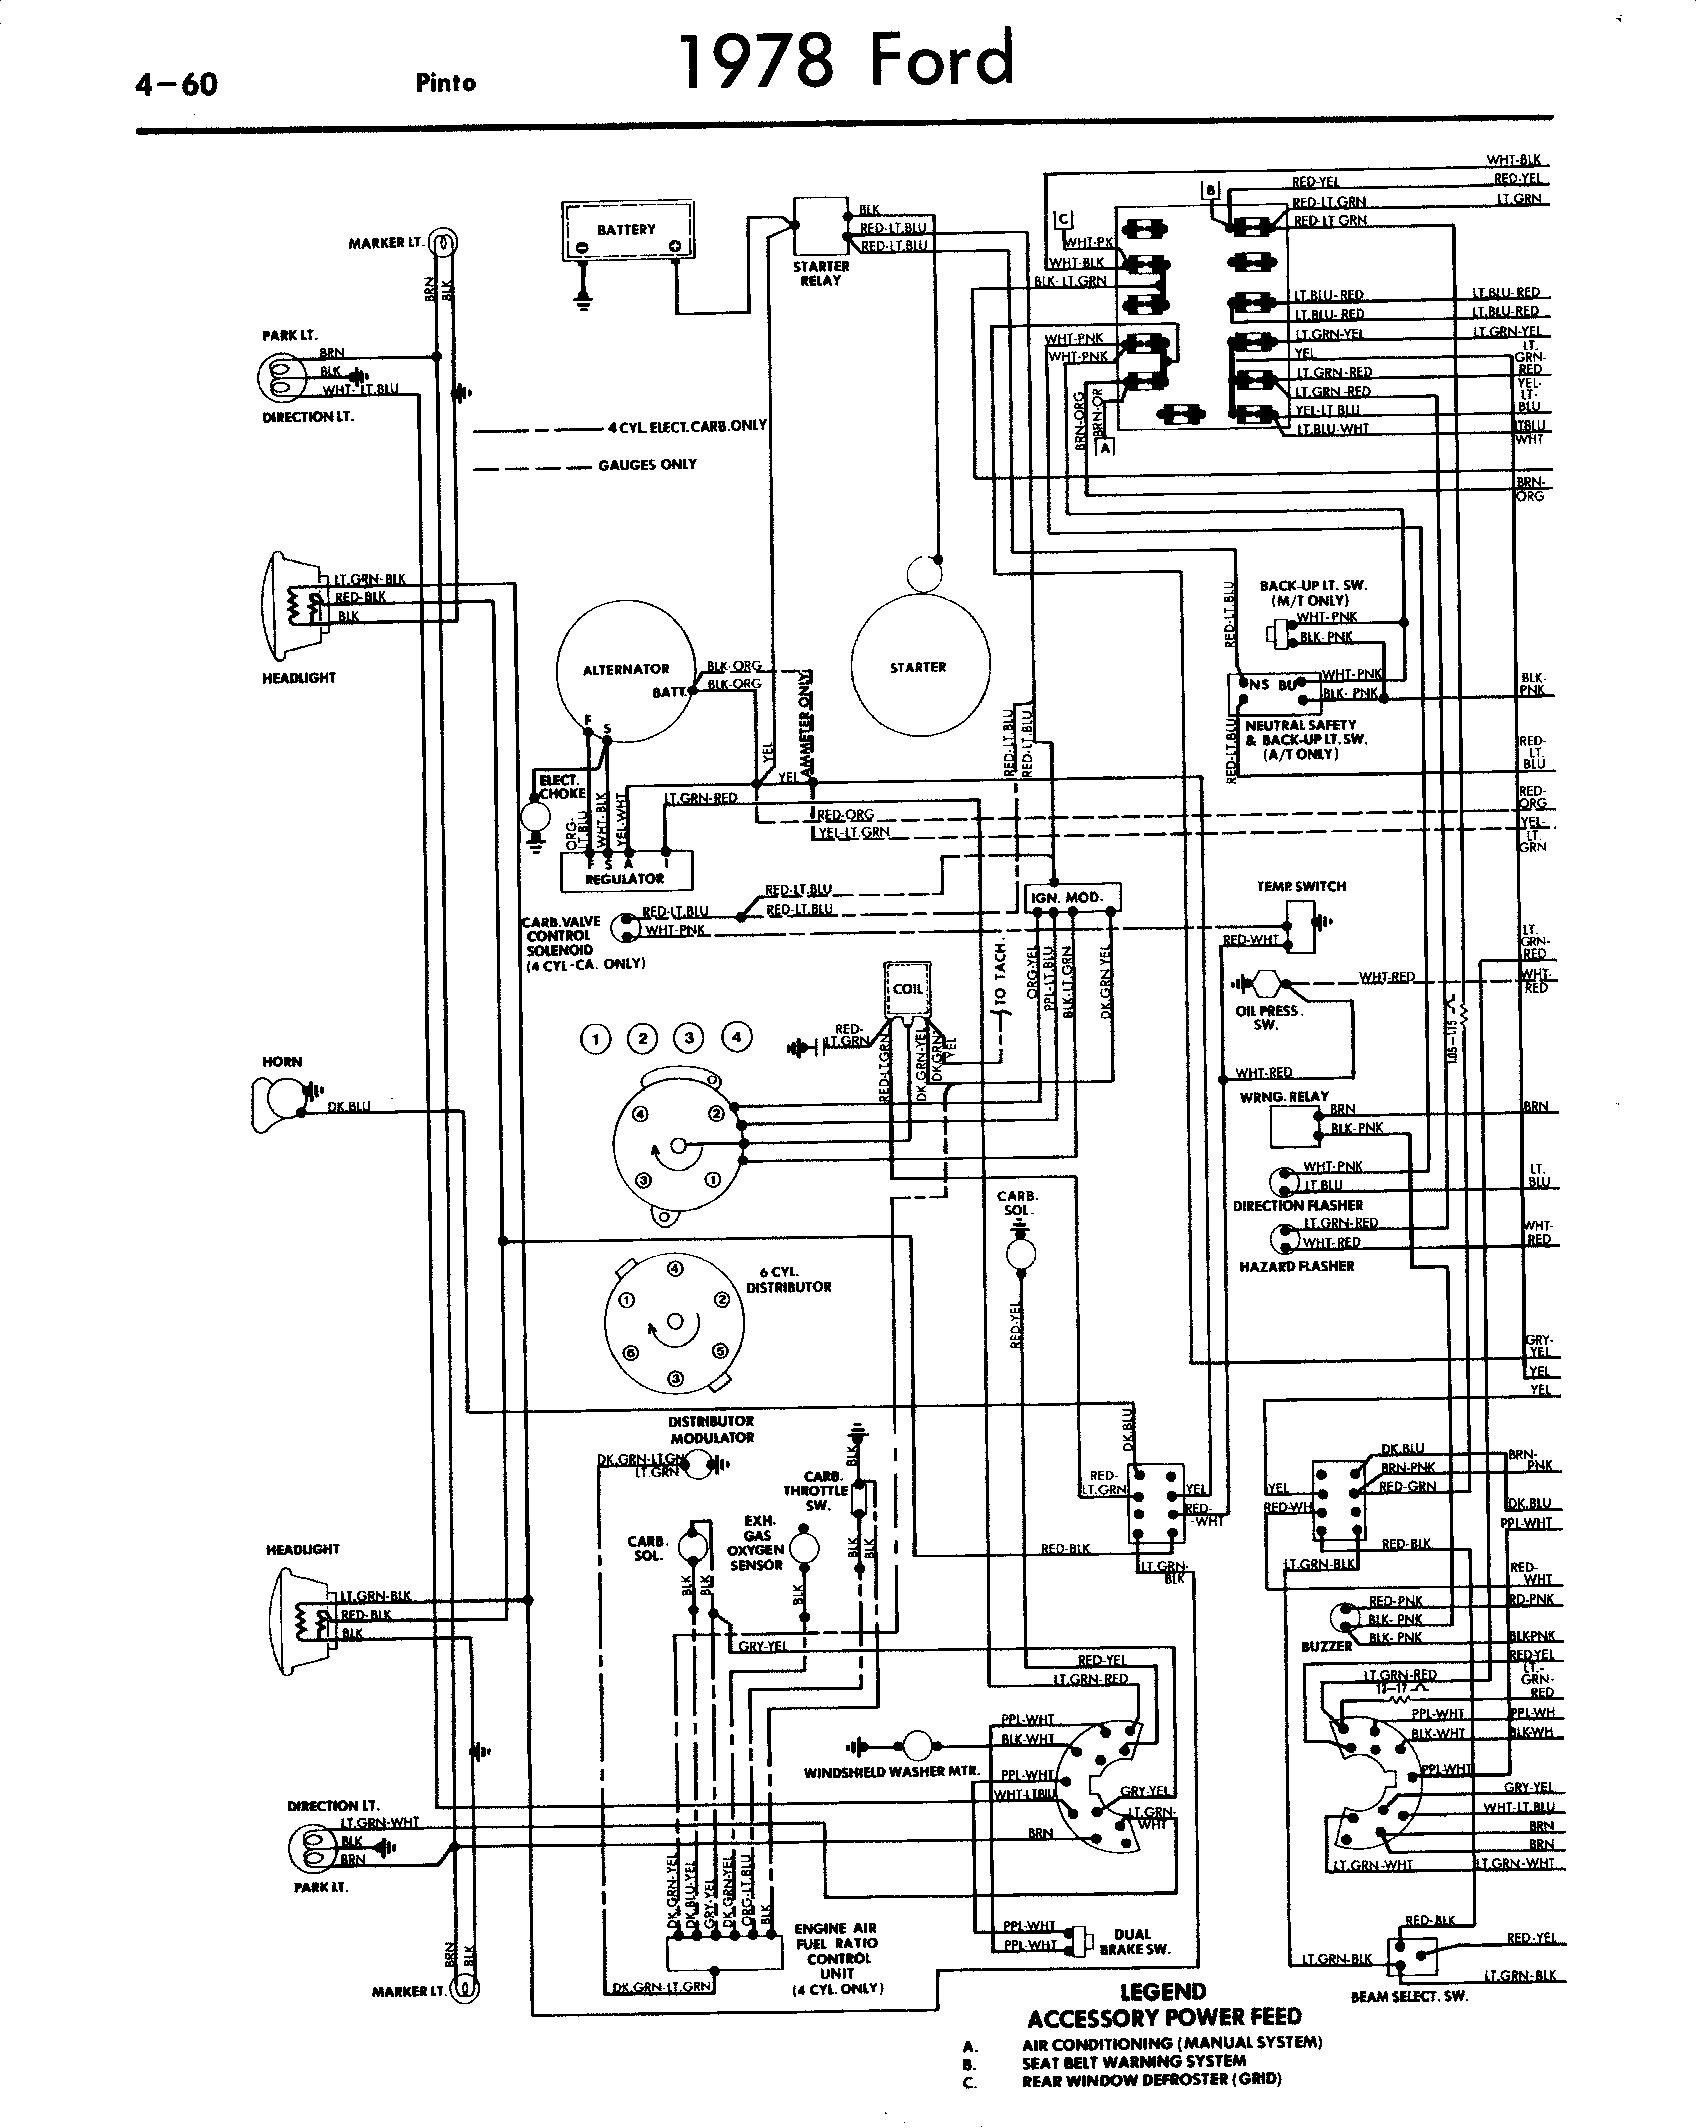 Ford F 150 5 0 Engine Diagram Wiring Diagram Image